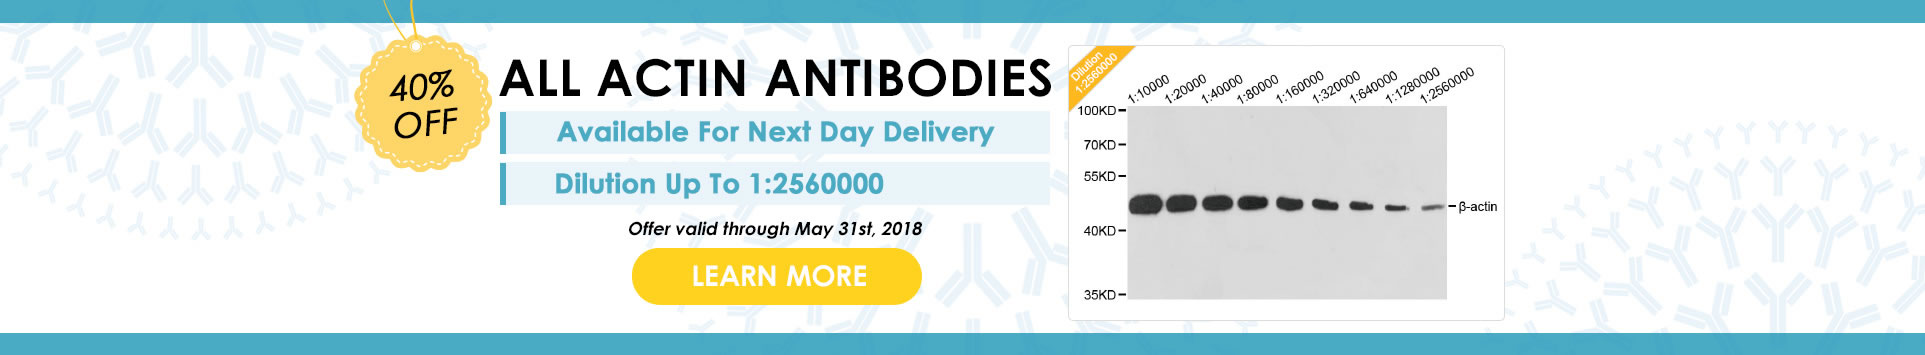 40% Off on All Actin Antibodies, Dilution Up To 1:2560000, Learn More